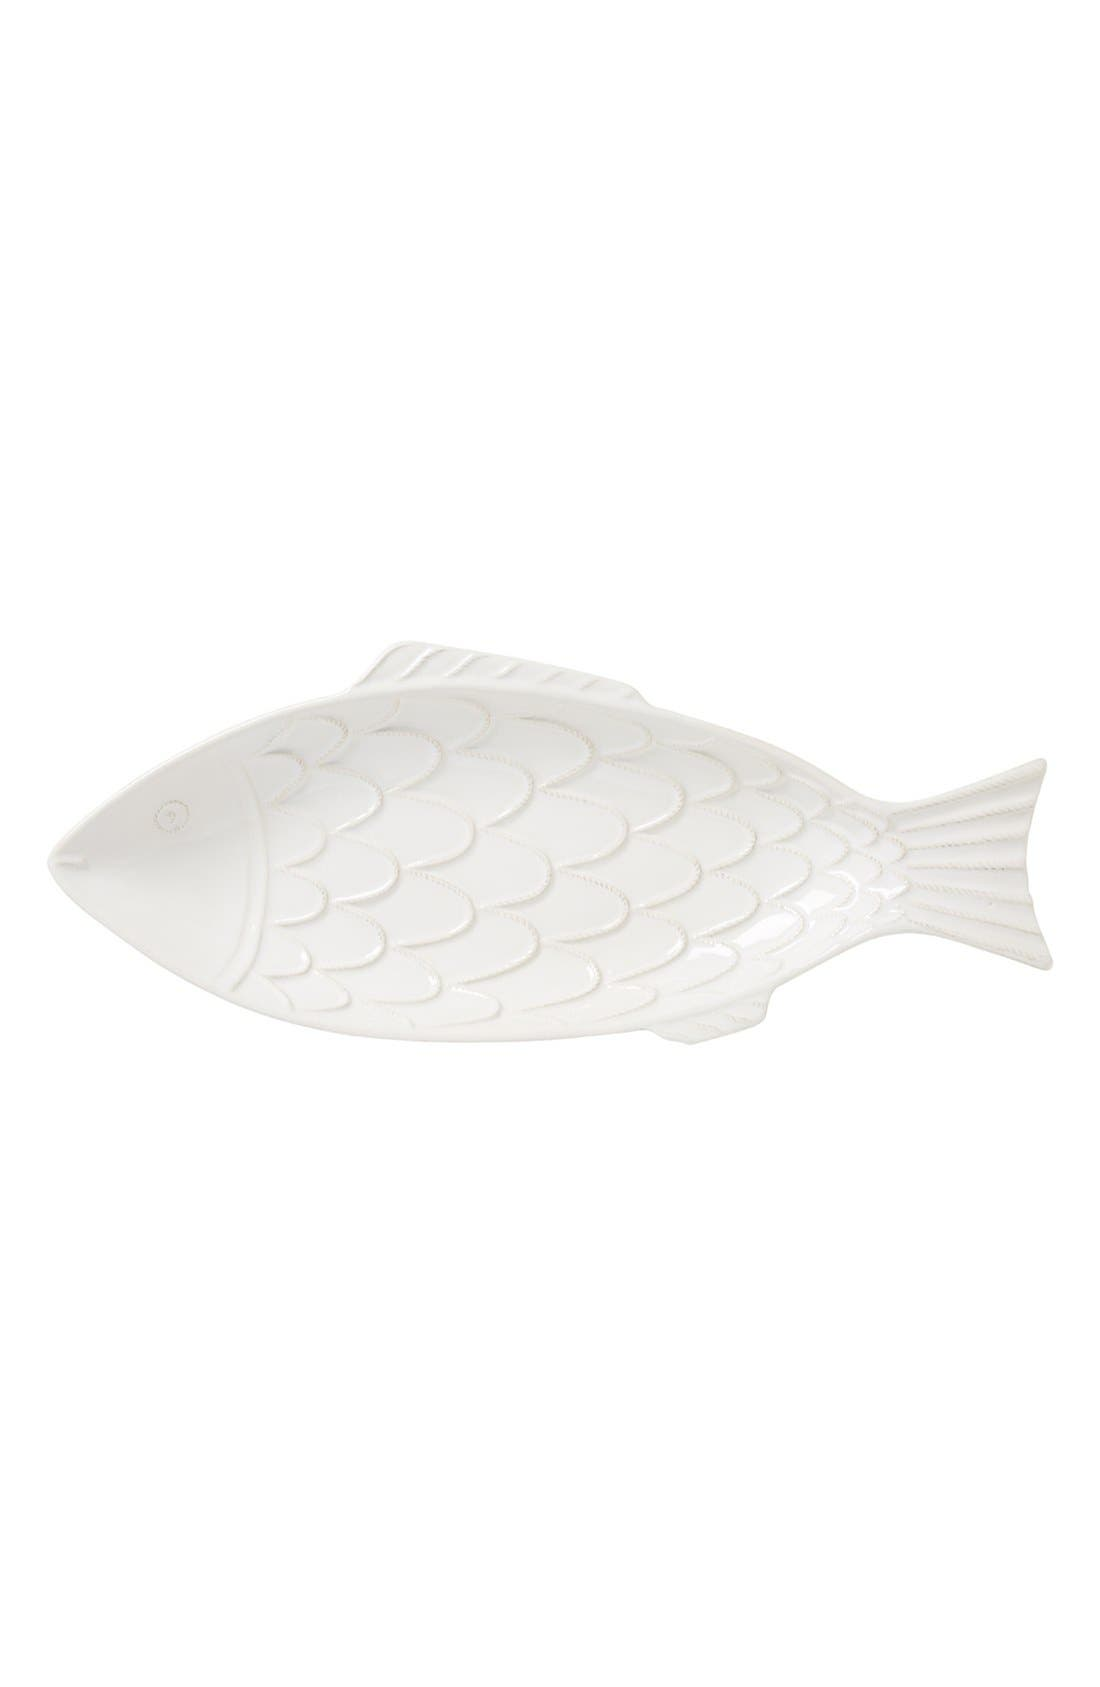 'Berry and Thread' Ceramic Fish Platter,                         Main,                         color, WHITE